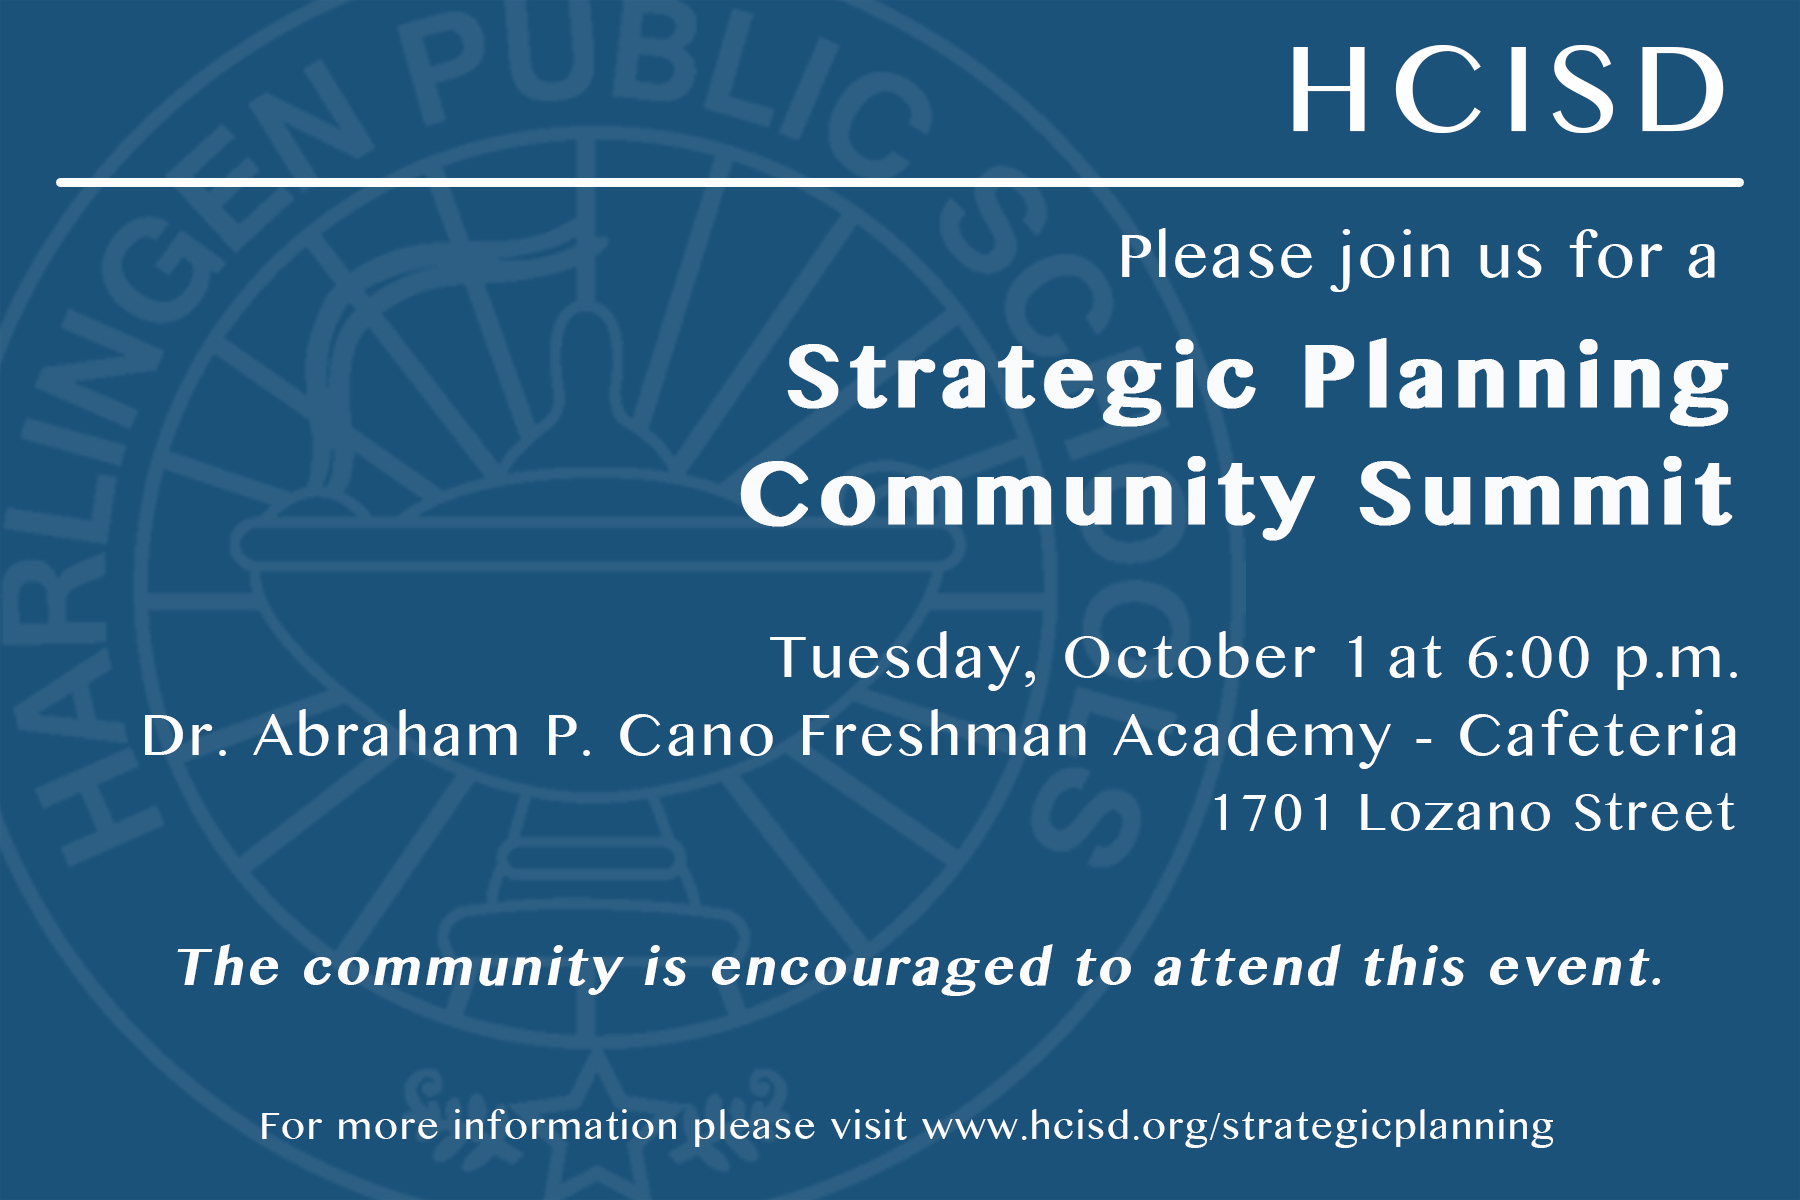 HCISD hosts Strategic Planning Community Summit to pave way for future success